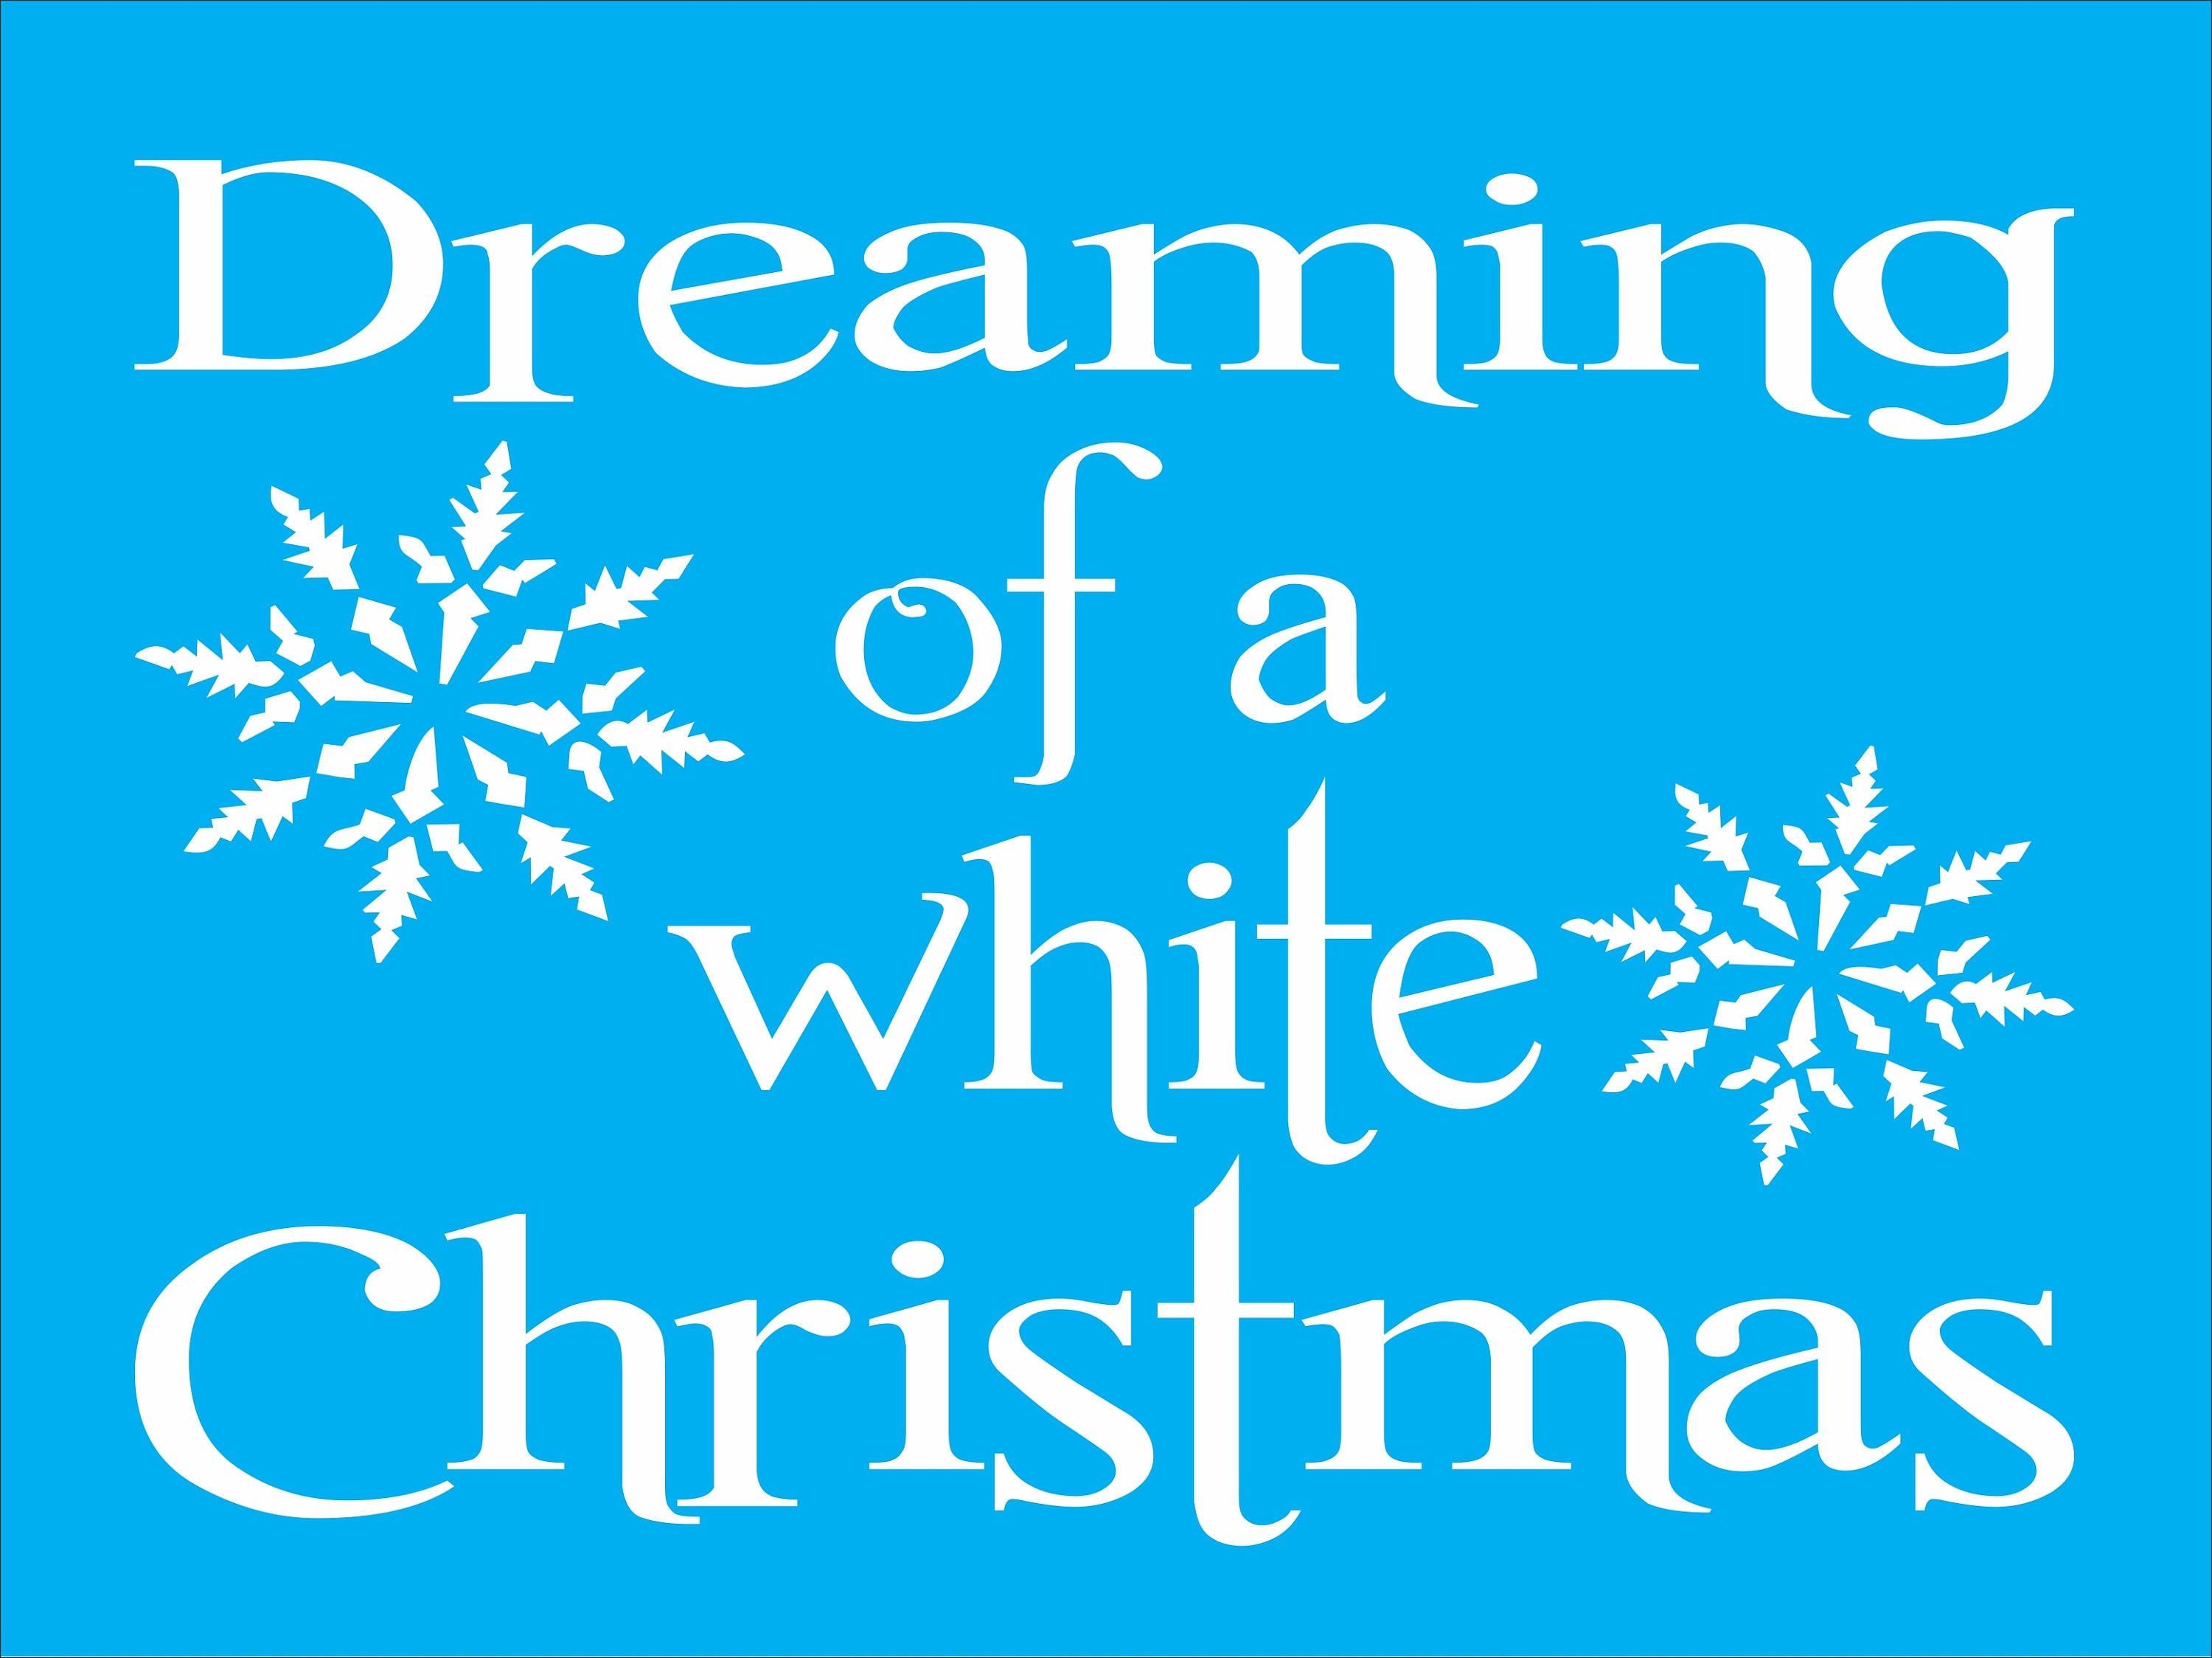 Dreaming Of A White Christmas.Dreaming Of A White Christmas With Snowflakes Stencil Christmas Stencils Snowflake Stencil White Christmas Stencil